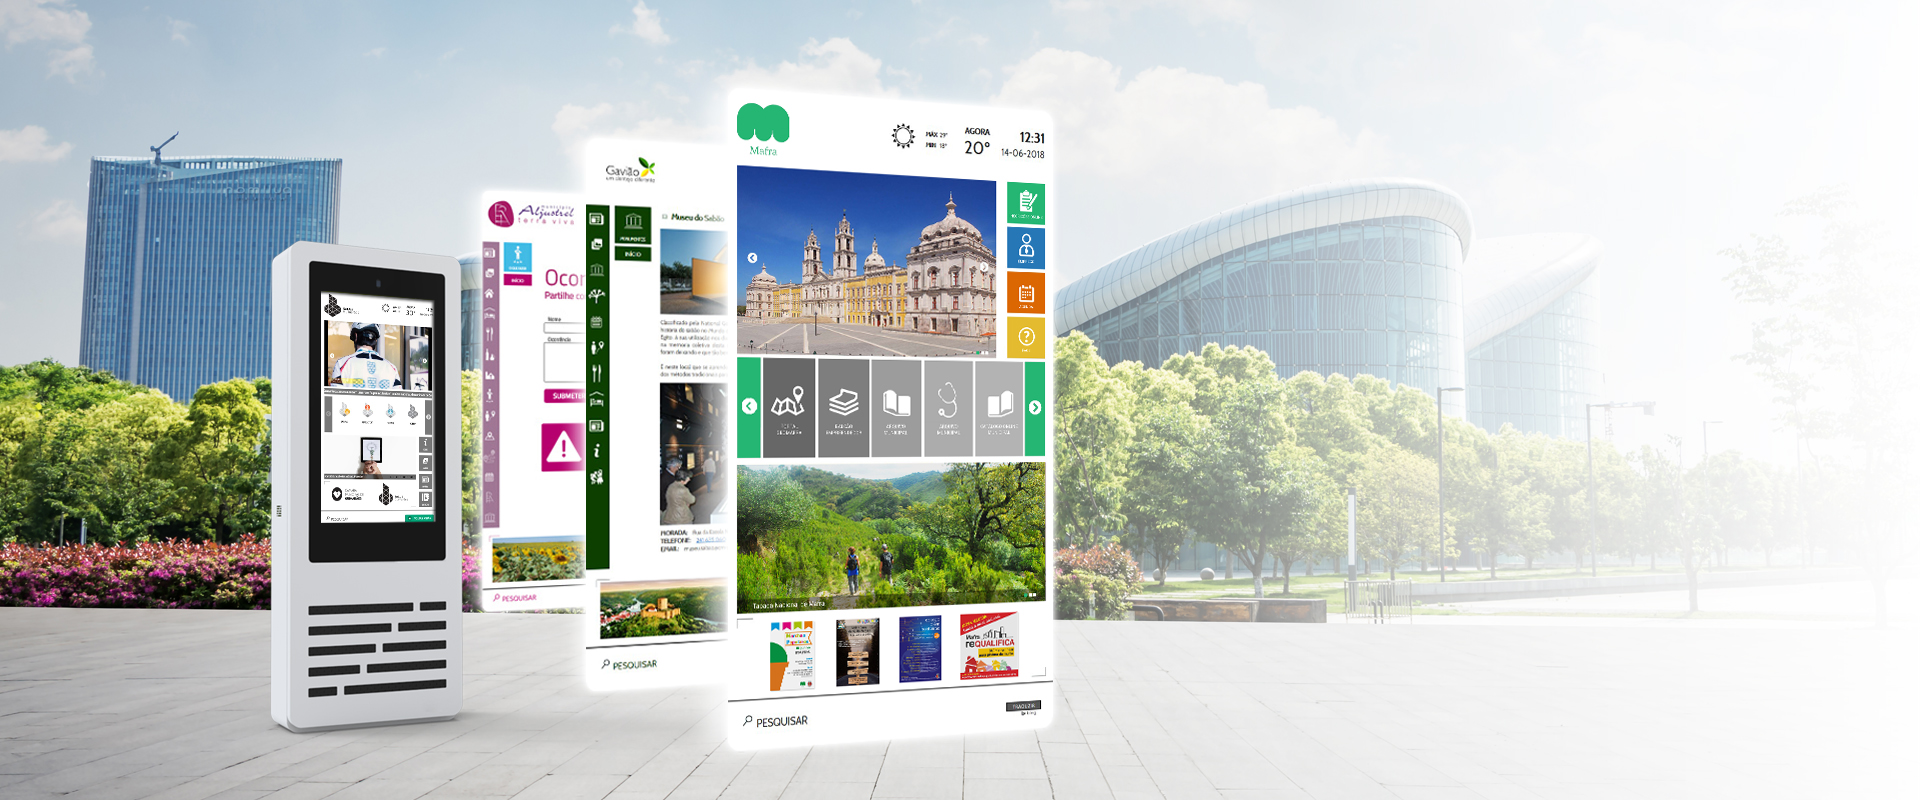 Informative software for Smart Cities